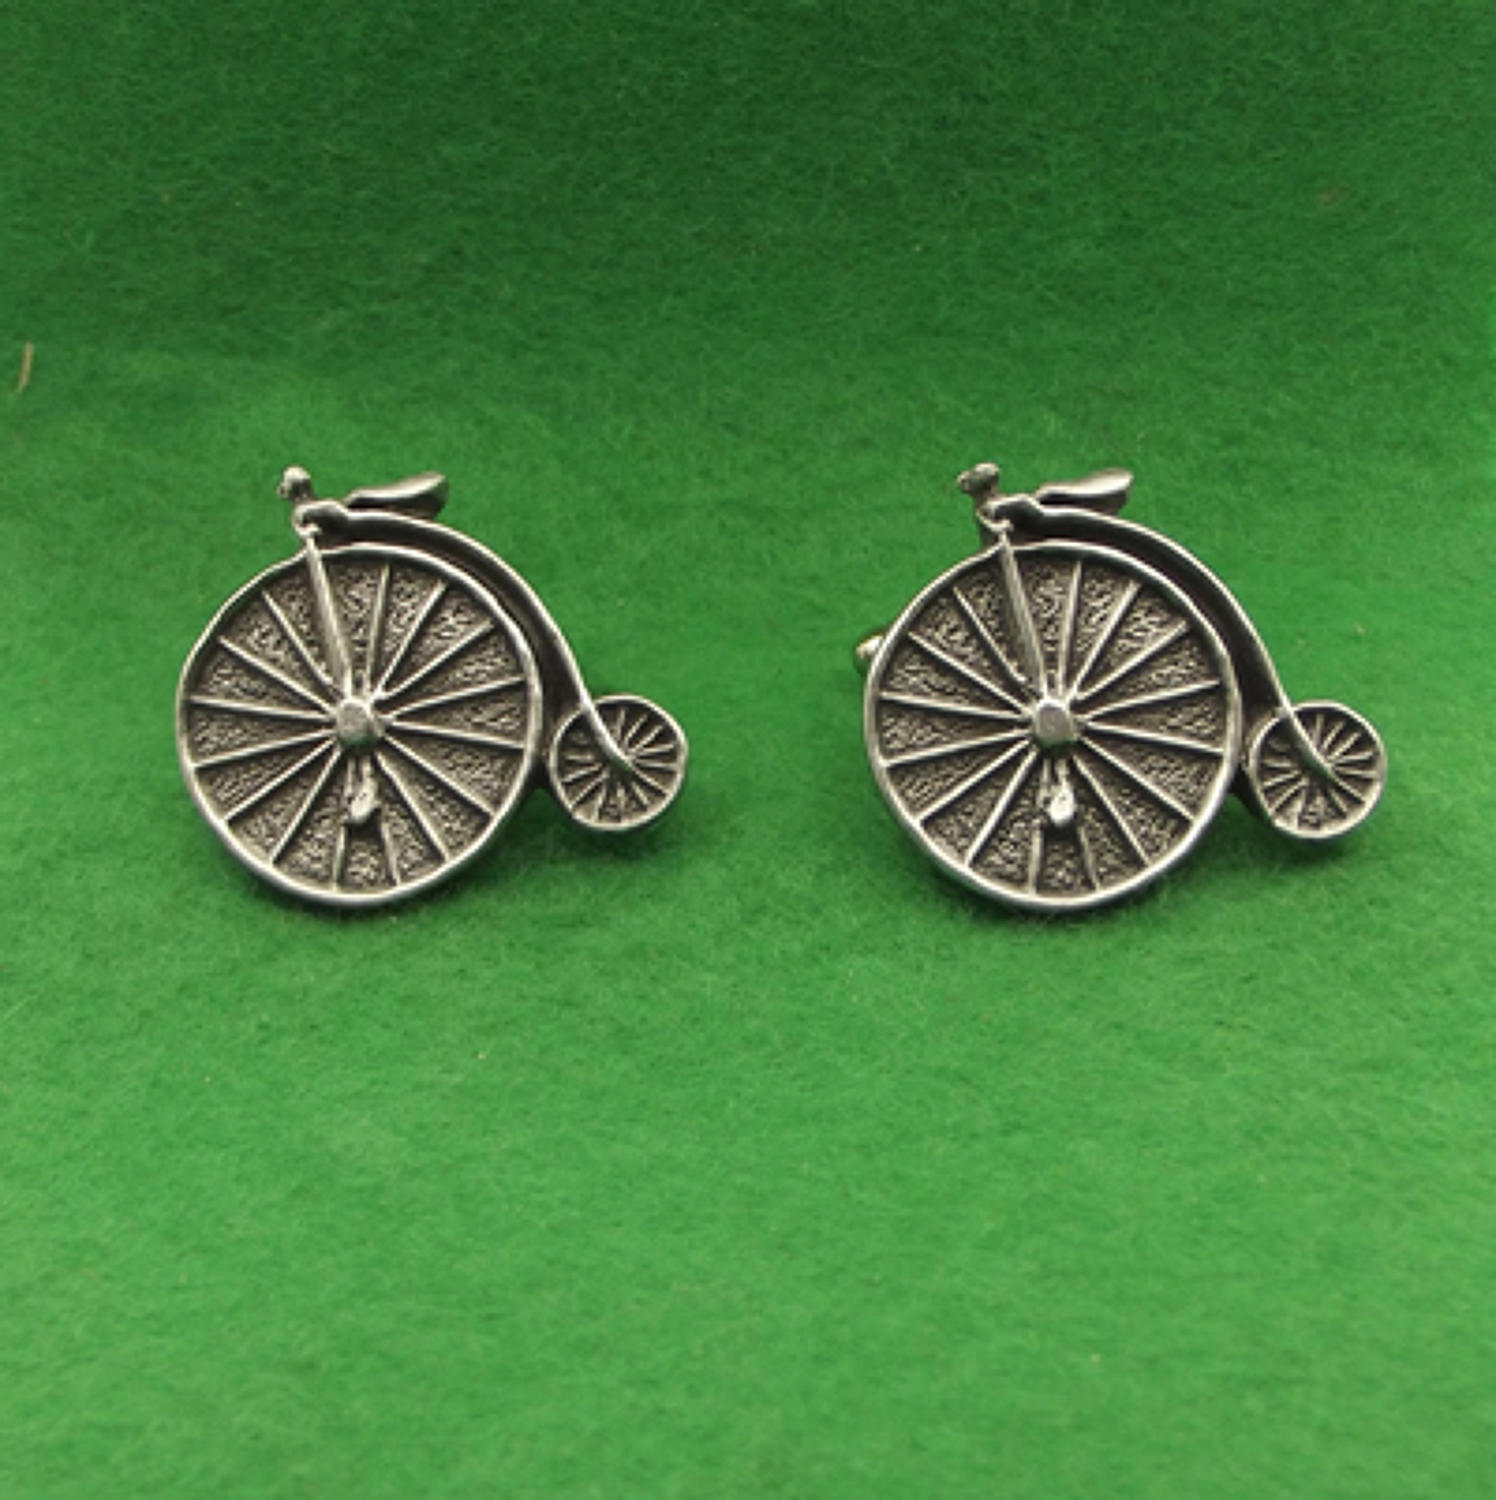 CL1220 Penny Farthing